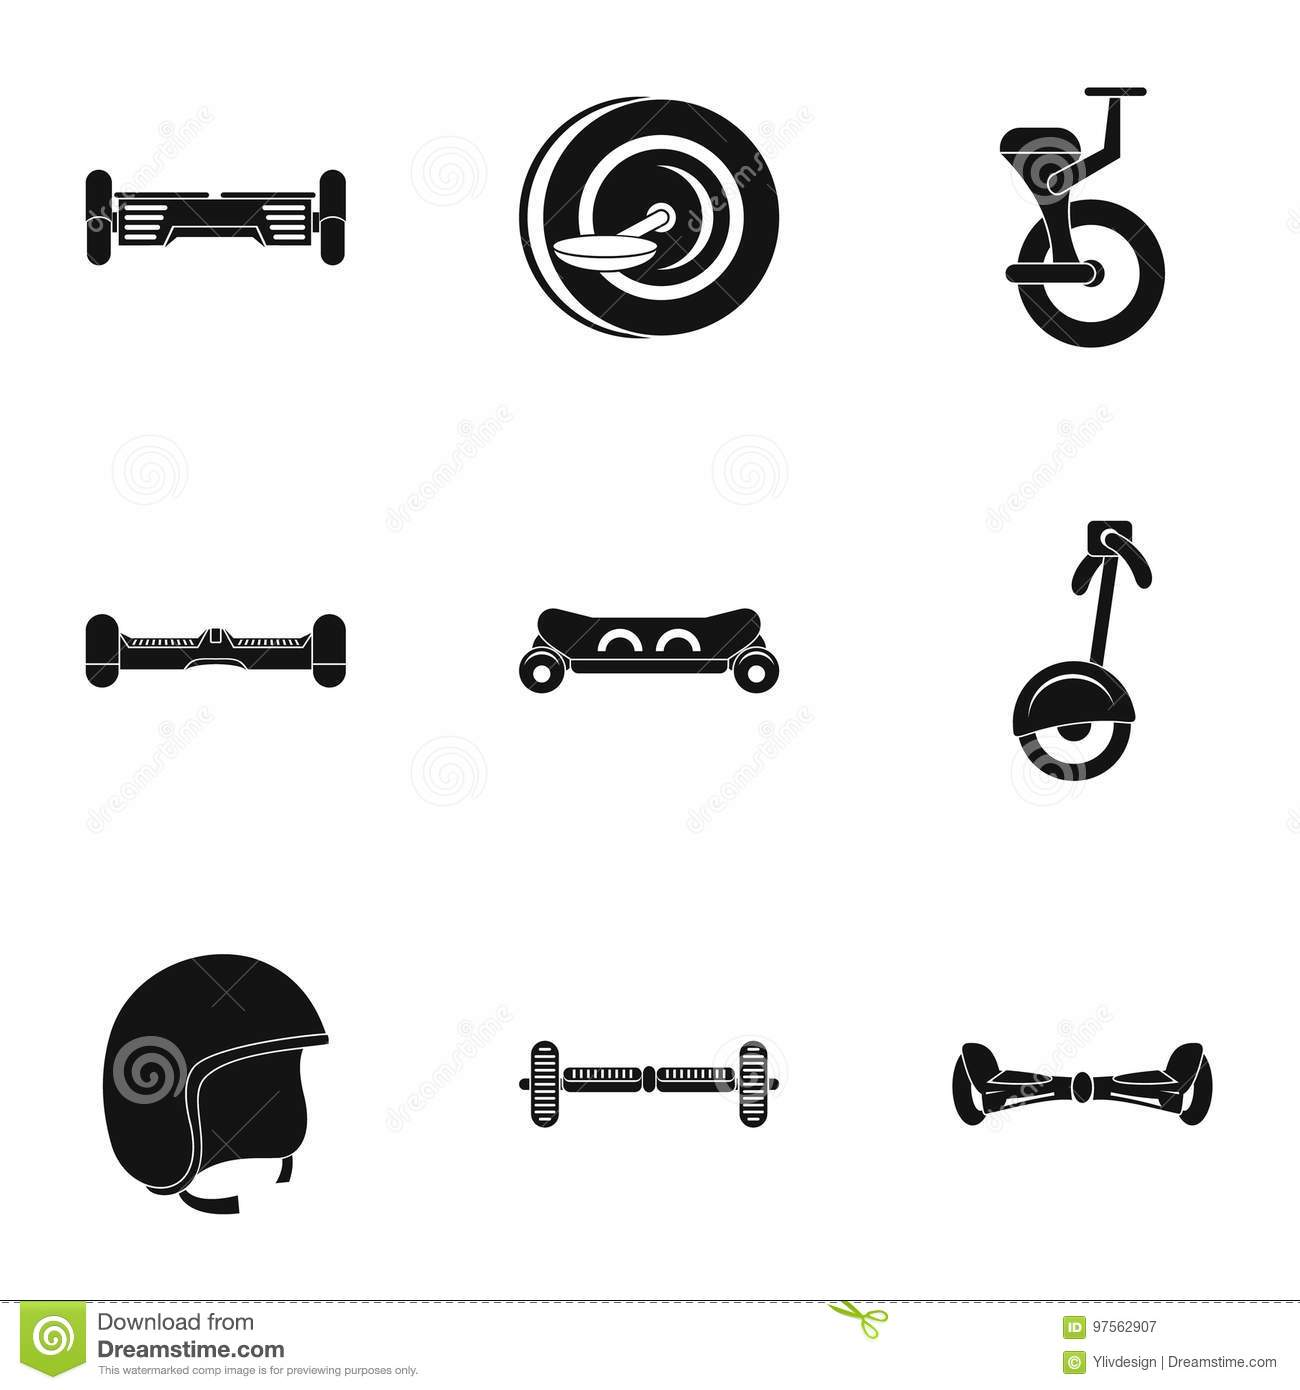 Gyroscooter Icon Set Simple Style Stock Vector Illustration Of Electrical Symbol Isolated On A White Background